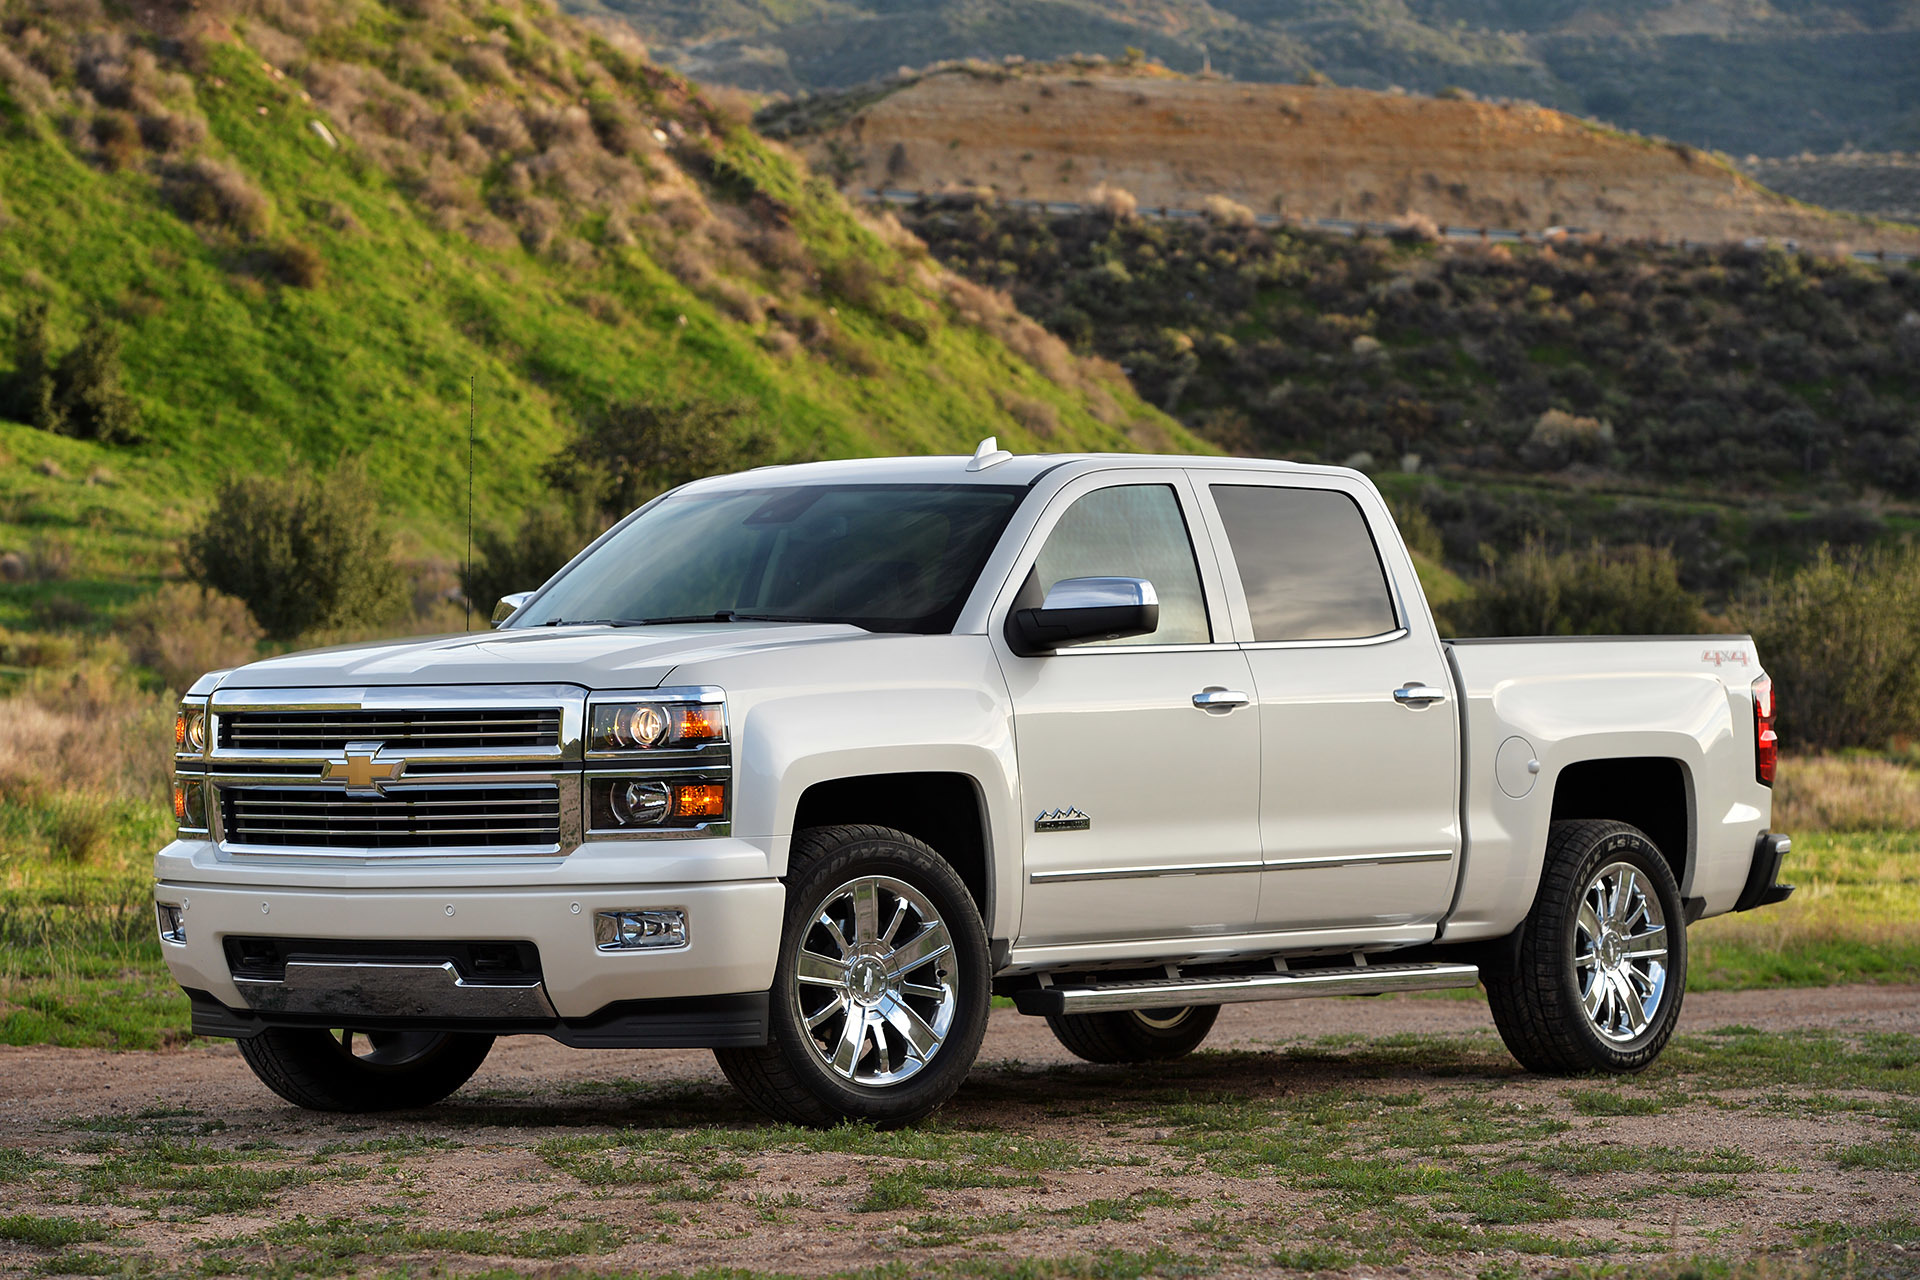 2015 chevrolet silverado high country car interior design. Black Bedroom Furniture Sets. Home Design Ideas